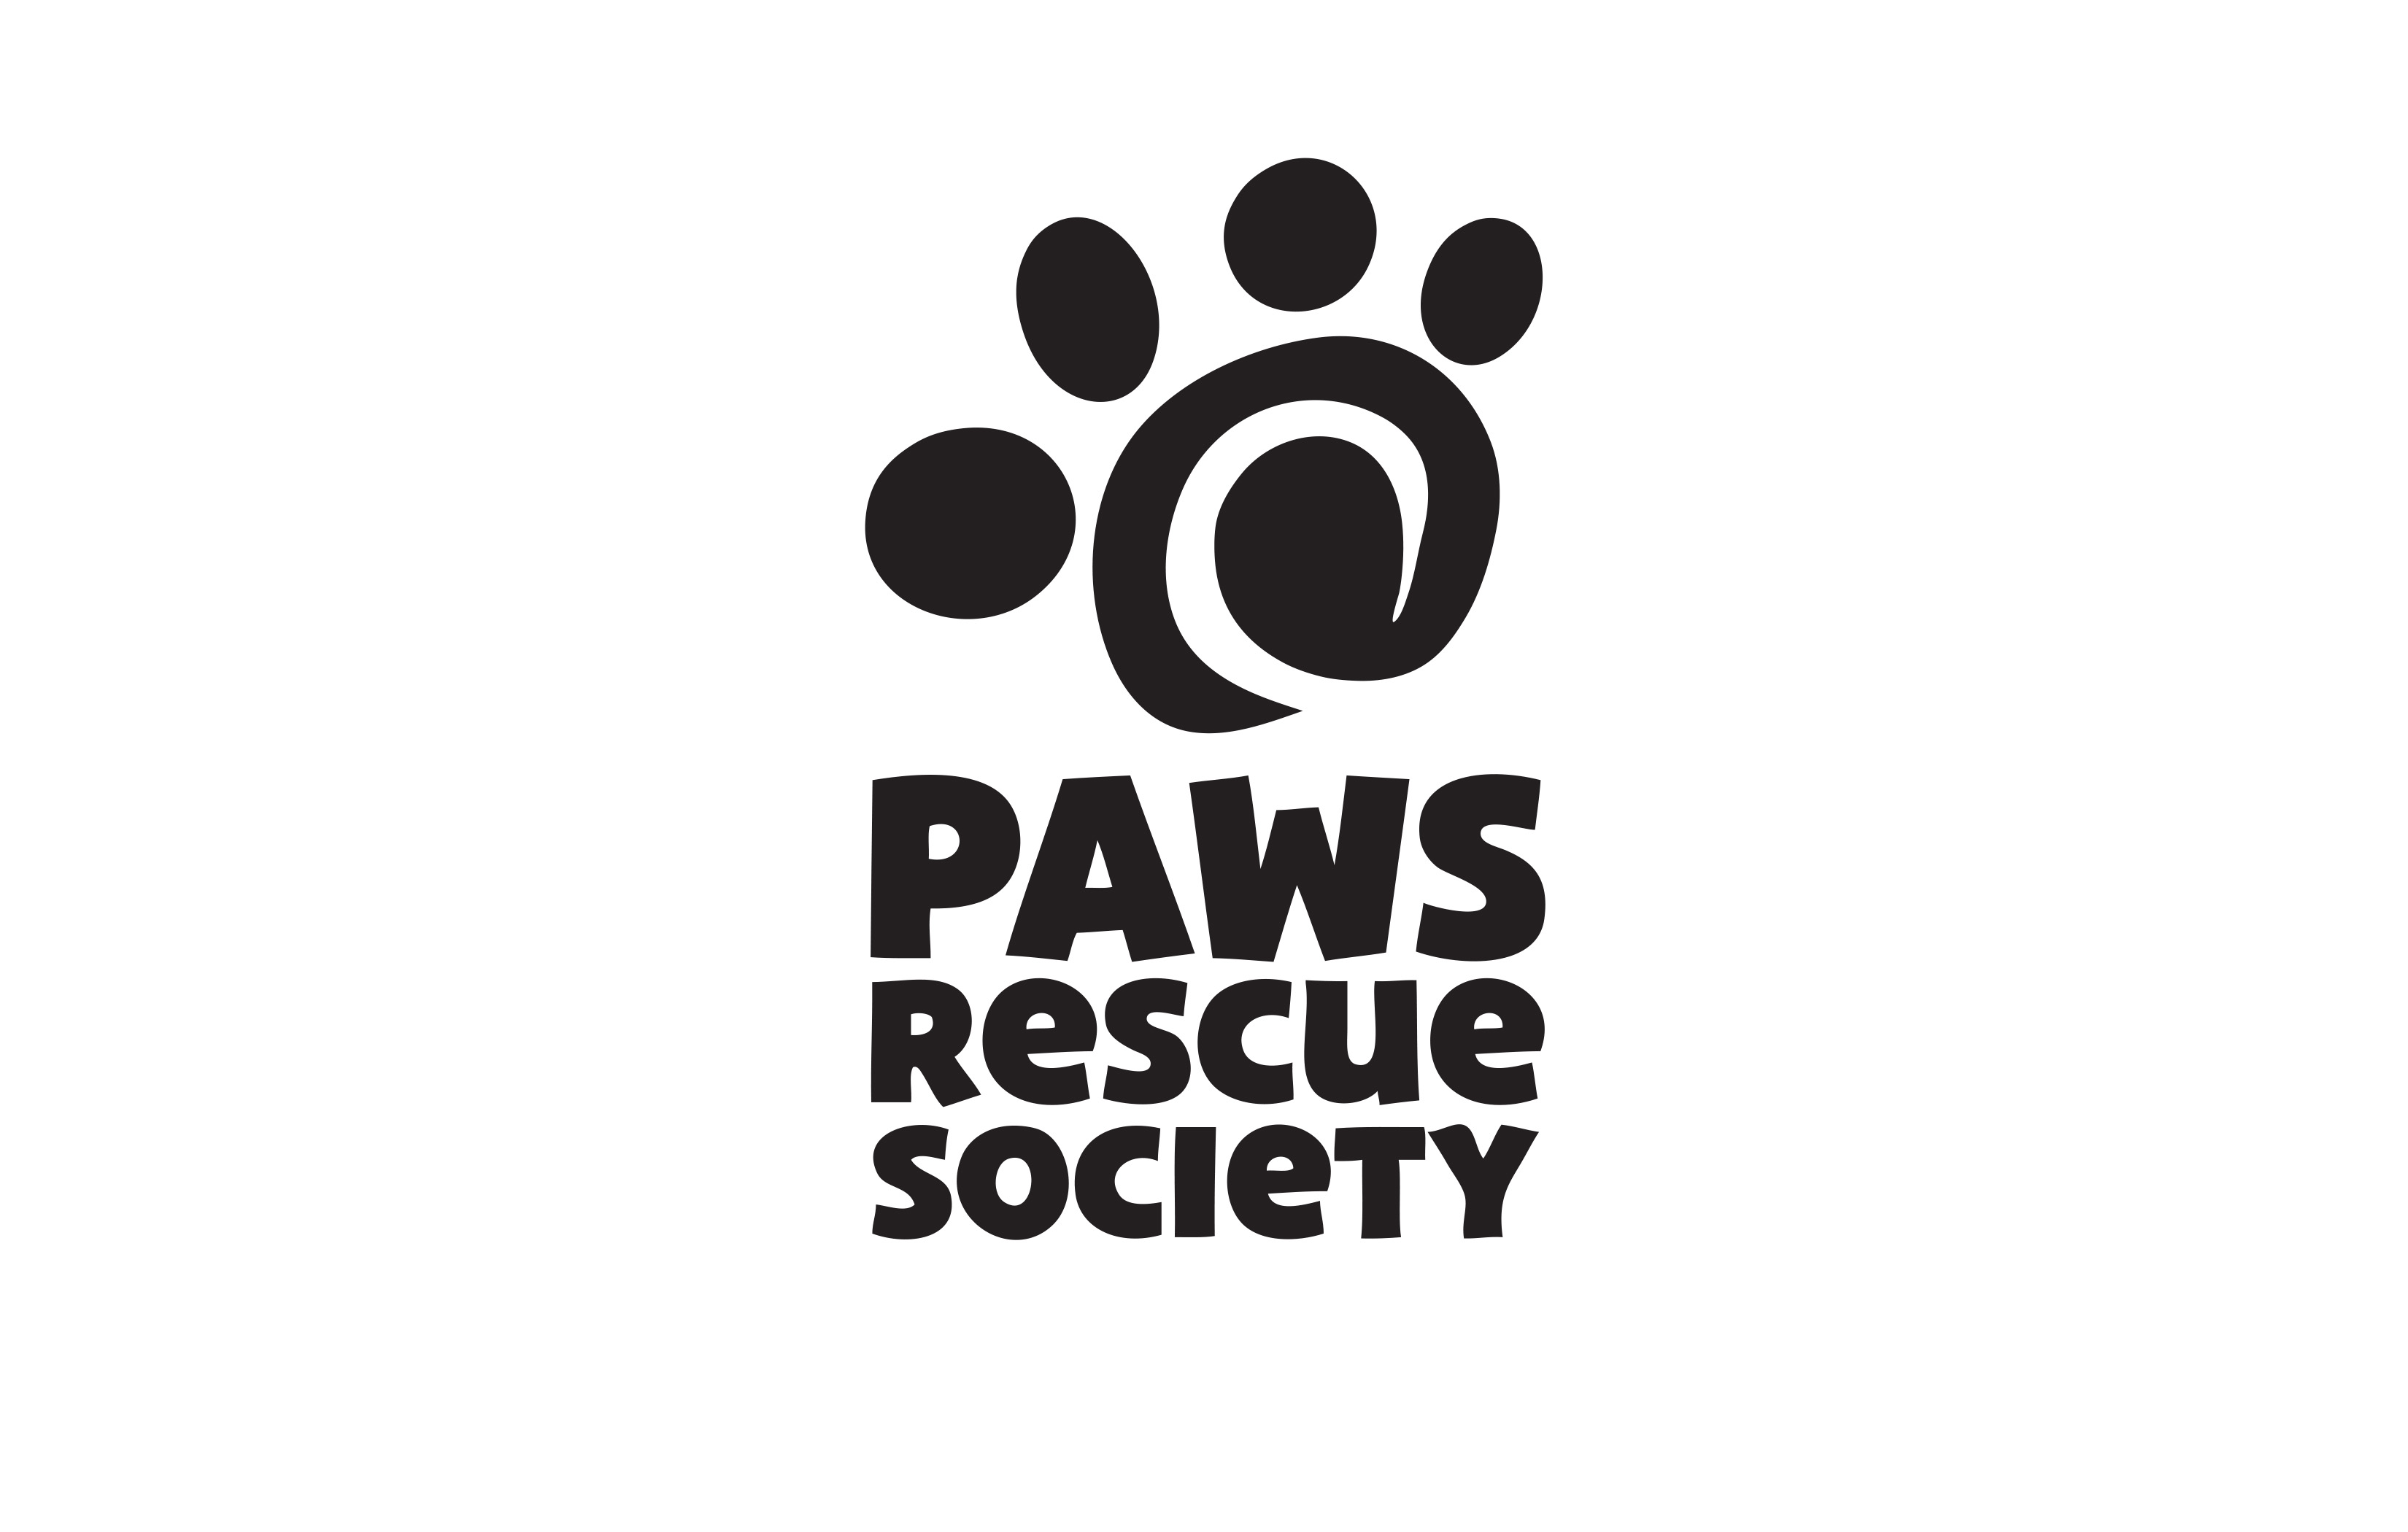 Paws Rescue Society